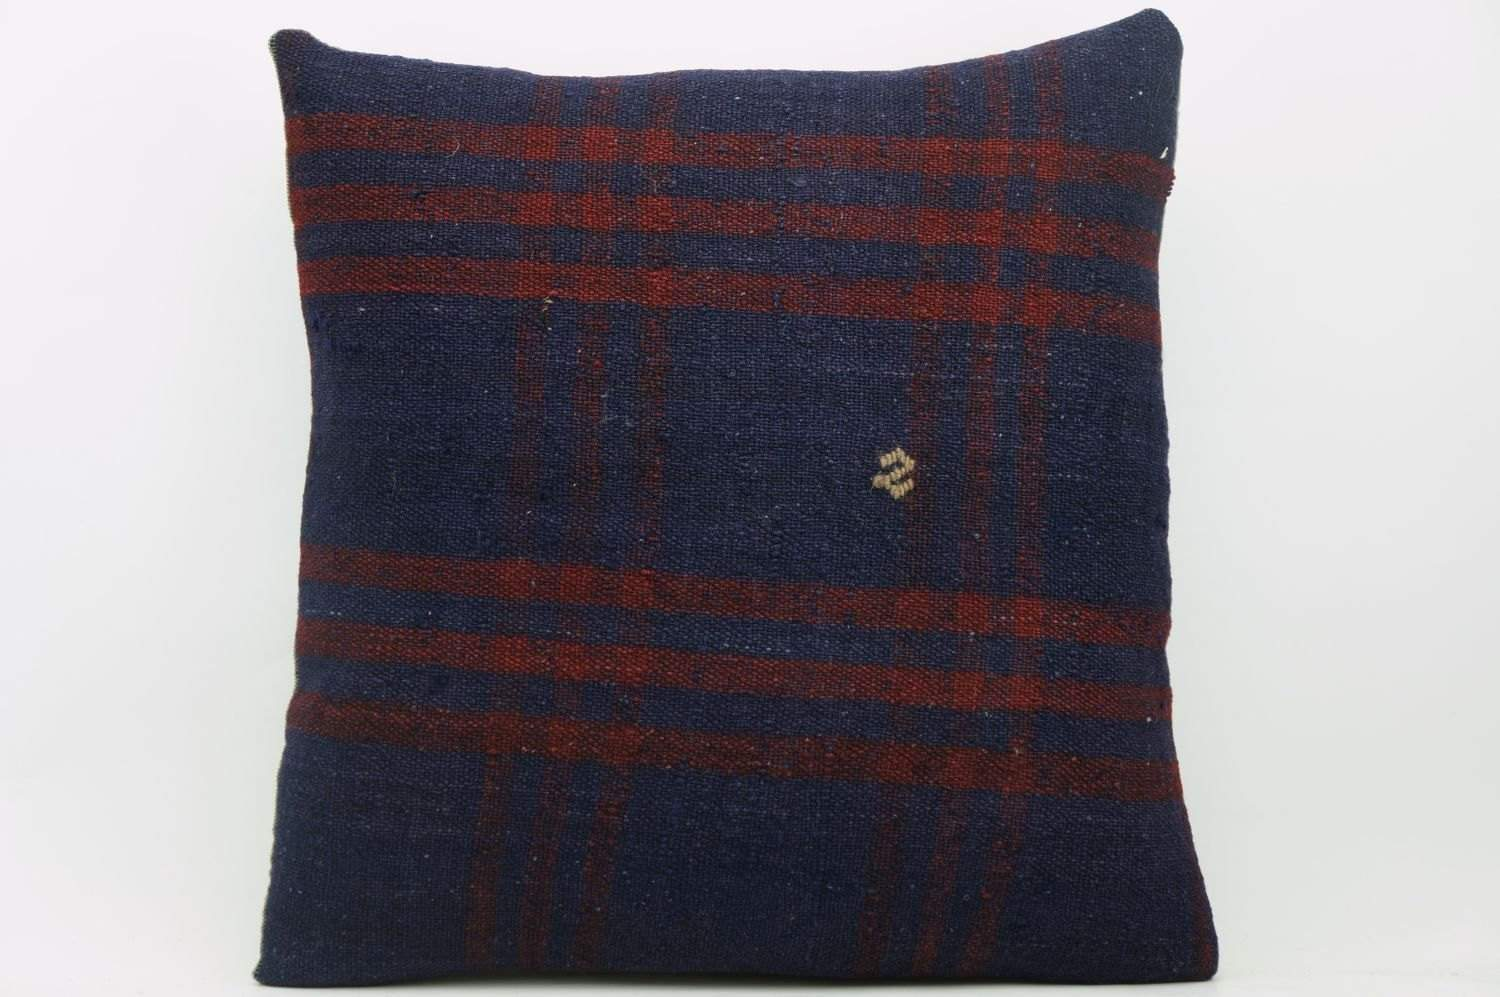 16x16 Hand Woven wool green black plaid Kilim Pillow cushion 1082_A Wool pillow cover,navy blue,claret red